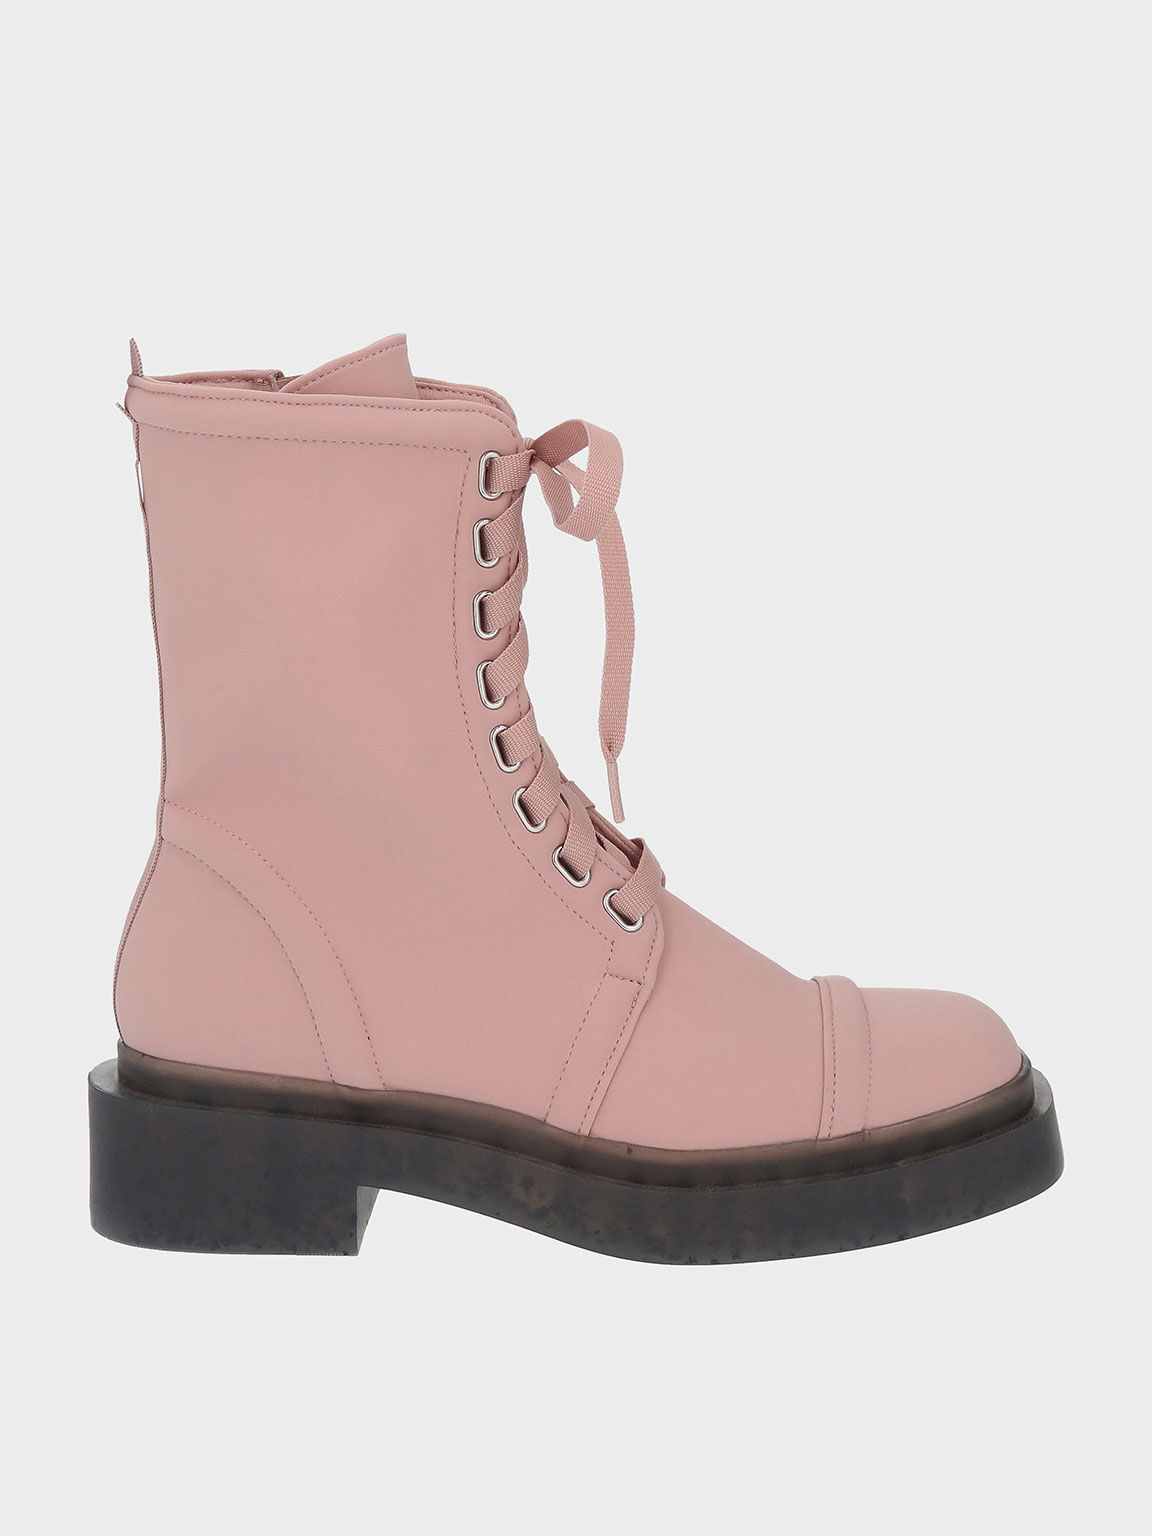 The Anniversary Series: Charli Recycled Nylon Lace-Up Ankle Boots, Pink, hi-res